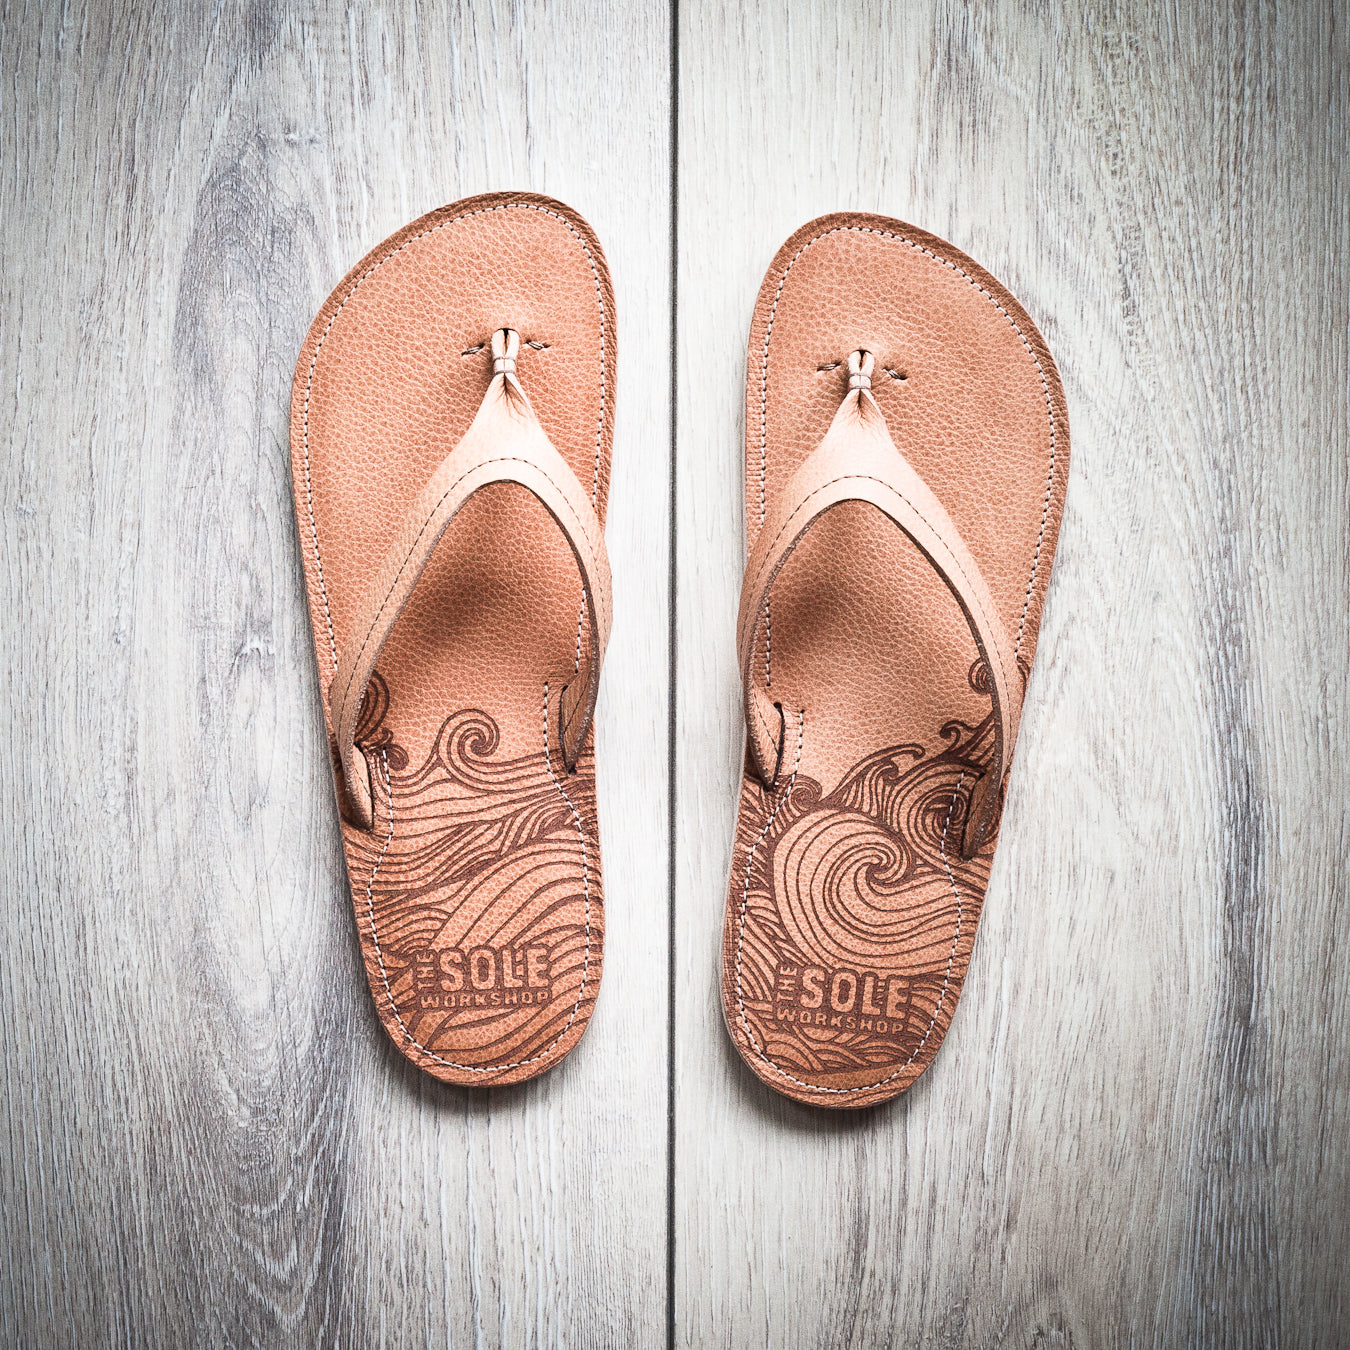 Custom wave pattern engraved on leather sandals.